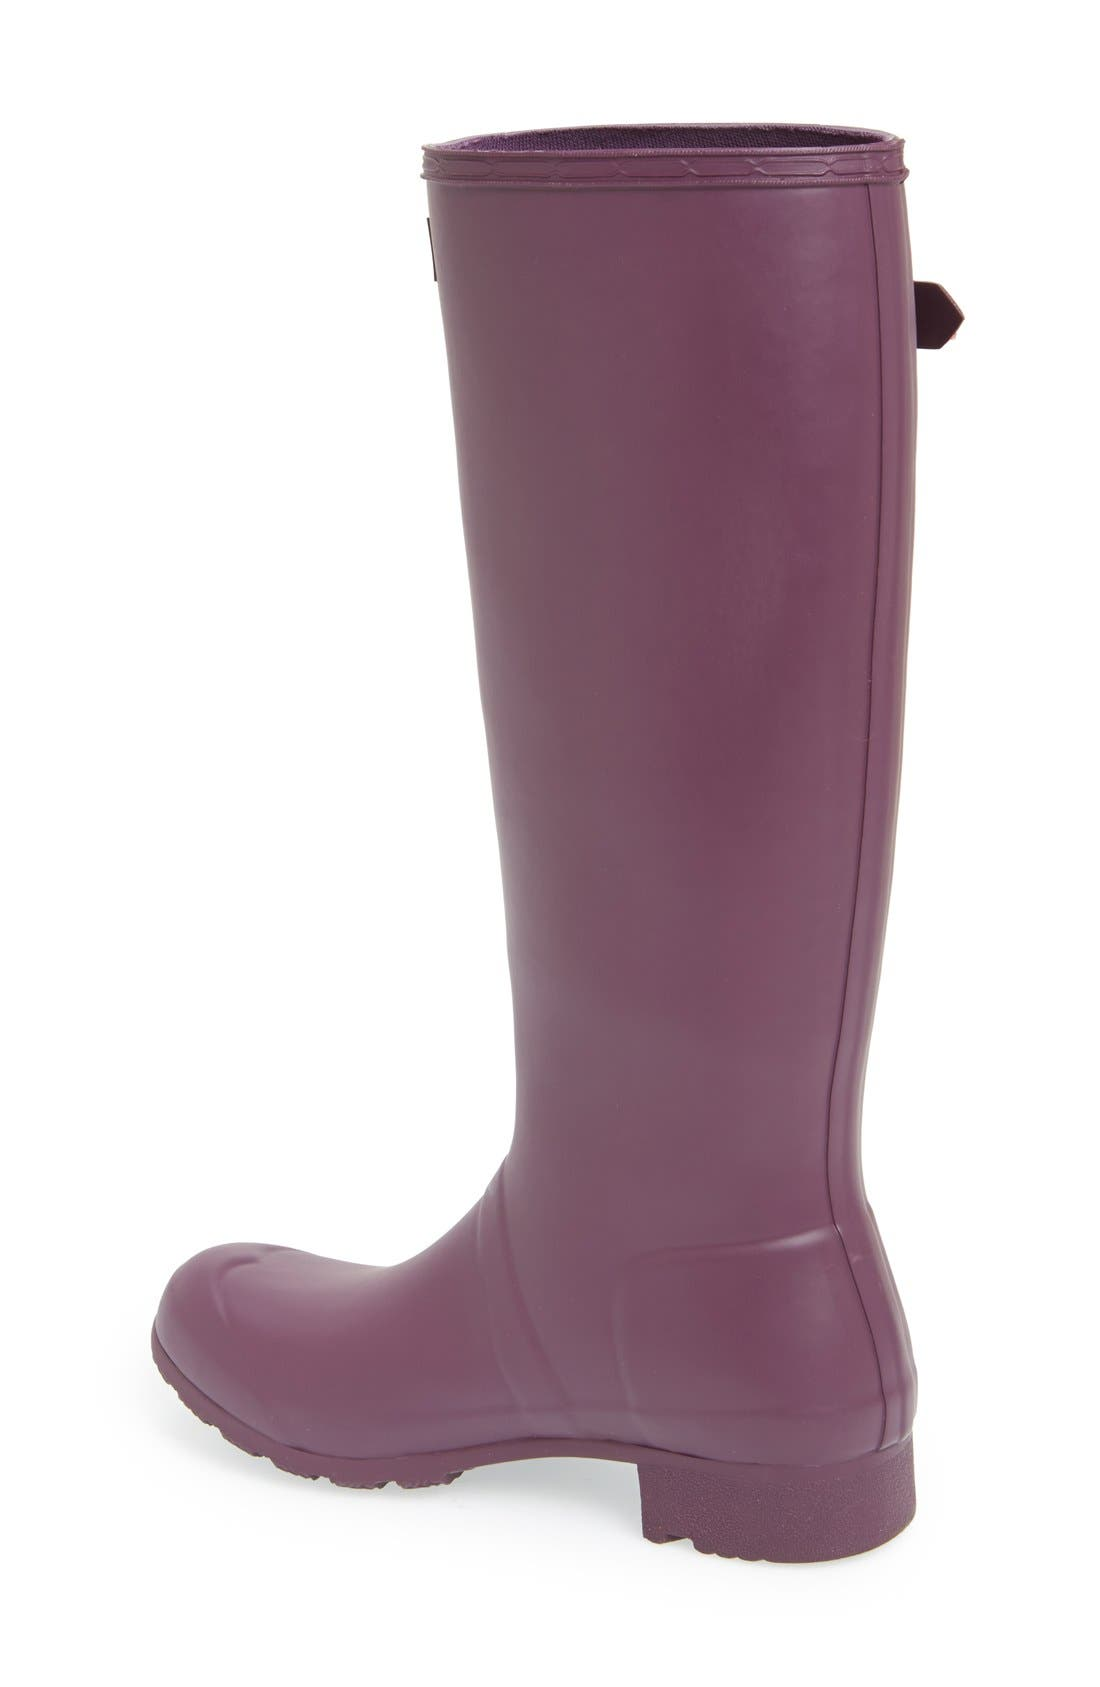 'Tour' Packable Rain Boot,                             Alternate thumbnail 70, color,